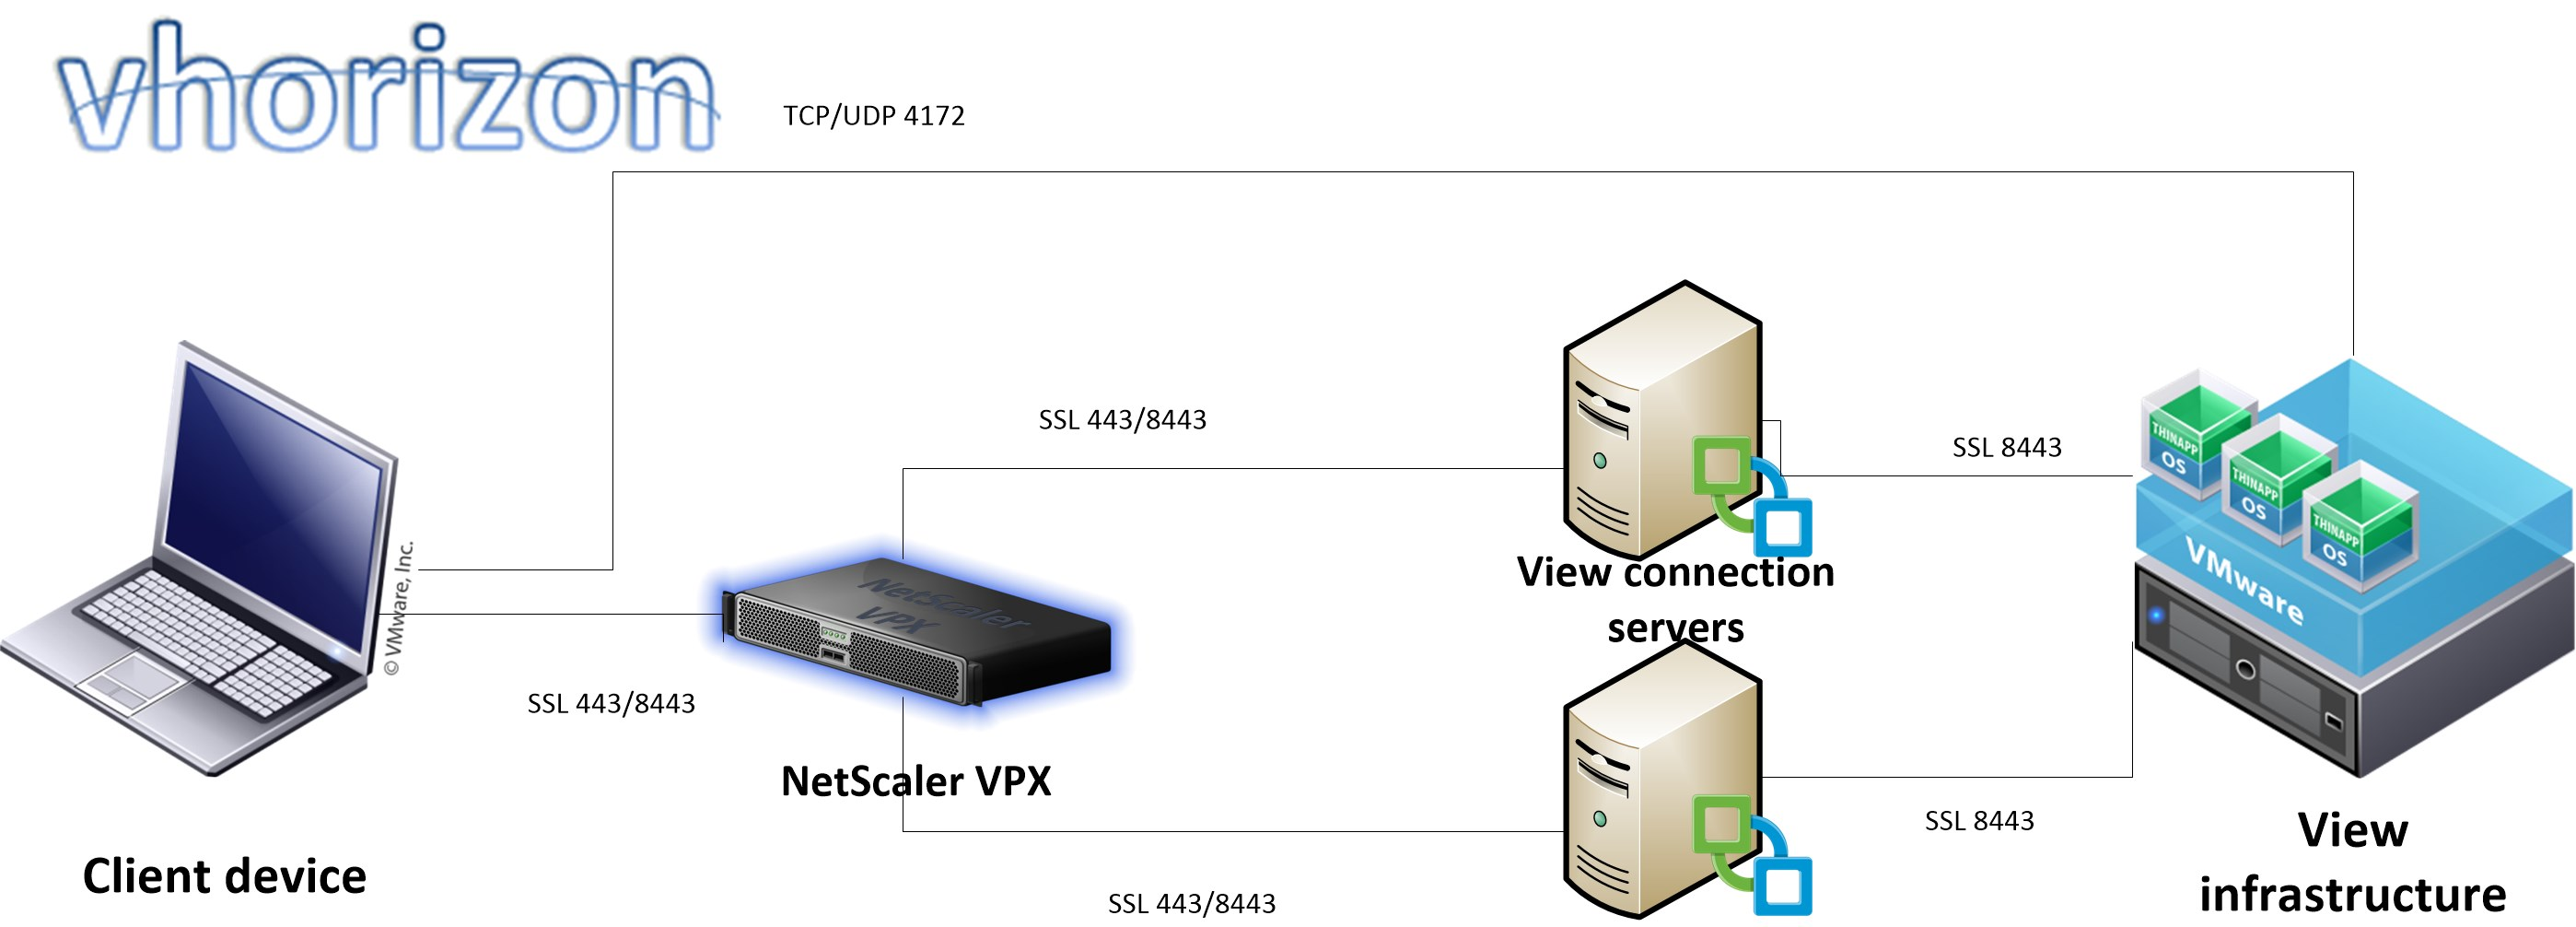 Load balancing VMware View connection servers with Citrix NetScaler |